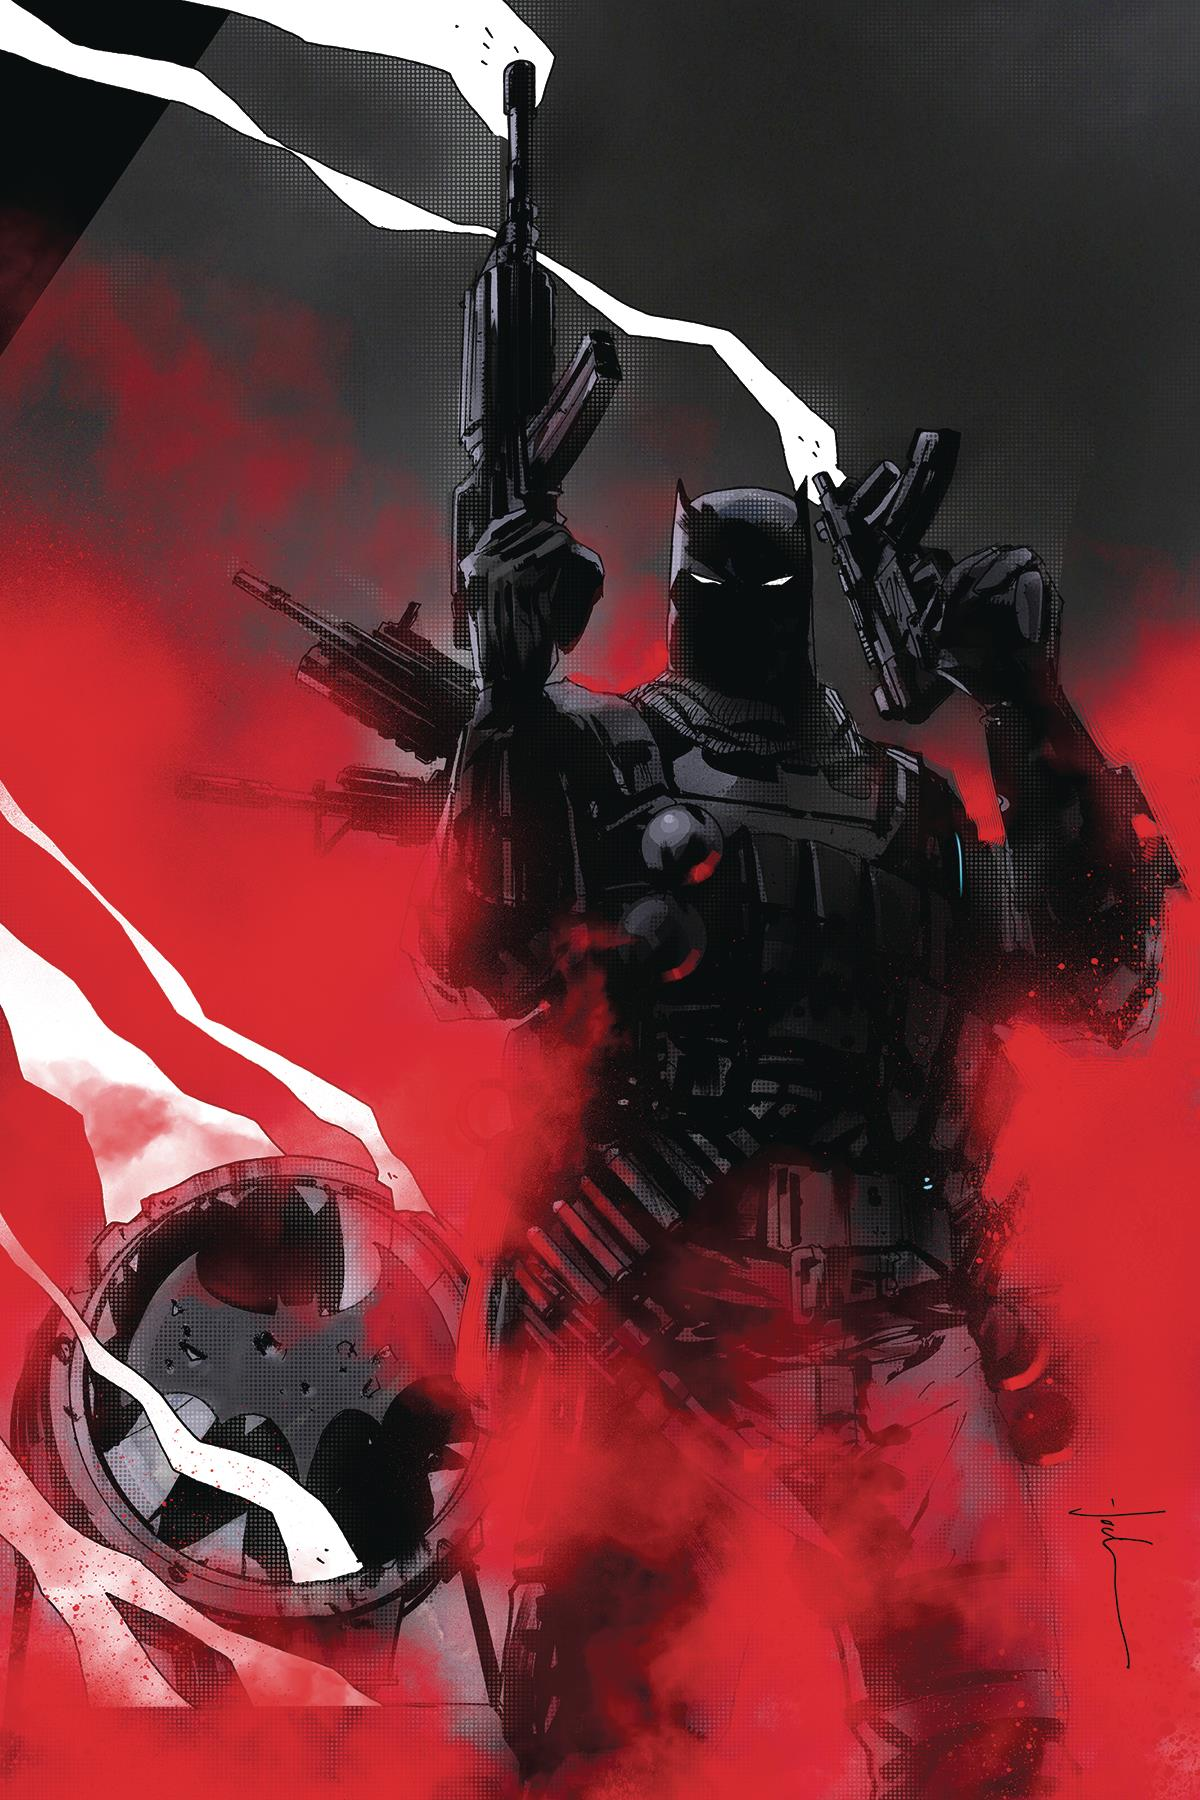 BATMAN WHO LAUGHS THE GRIM KNIGHT #1 | JAN190535 | (W) Scott Snyder, James TynionIV (A) Eduardo Risso (CA) Jocko | Terra de Còmic - Tu tienda de cómics online especializada en cómics, manga y merchandising